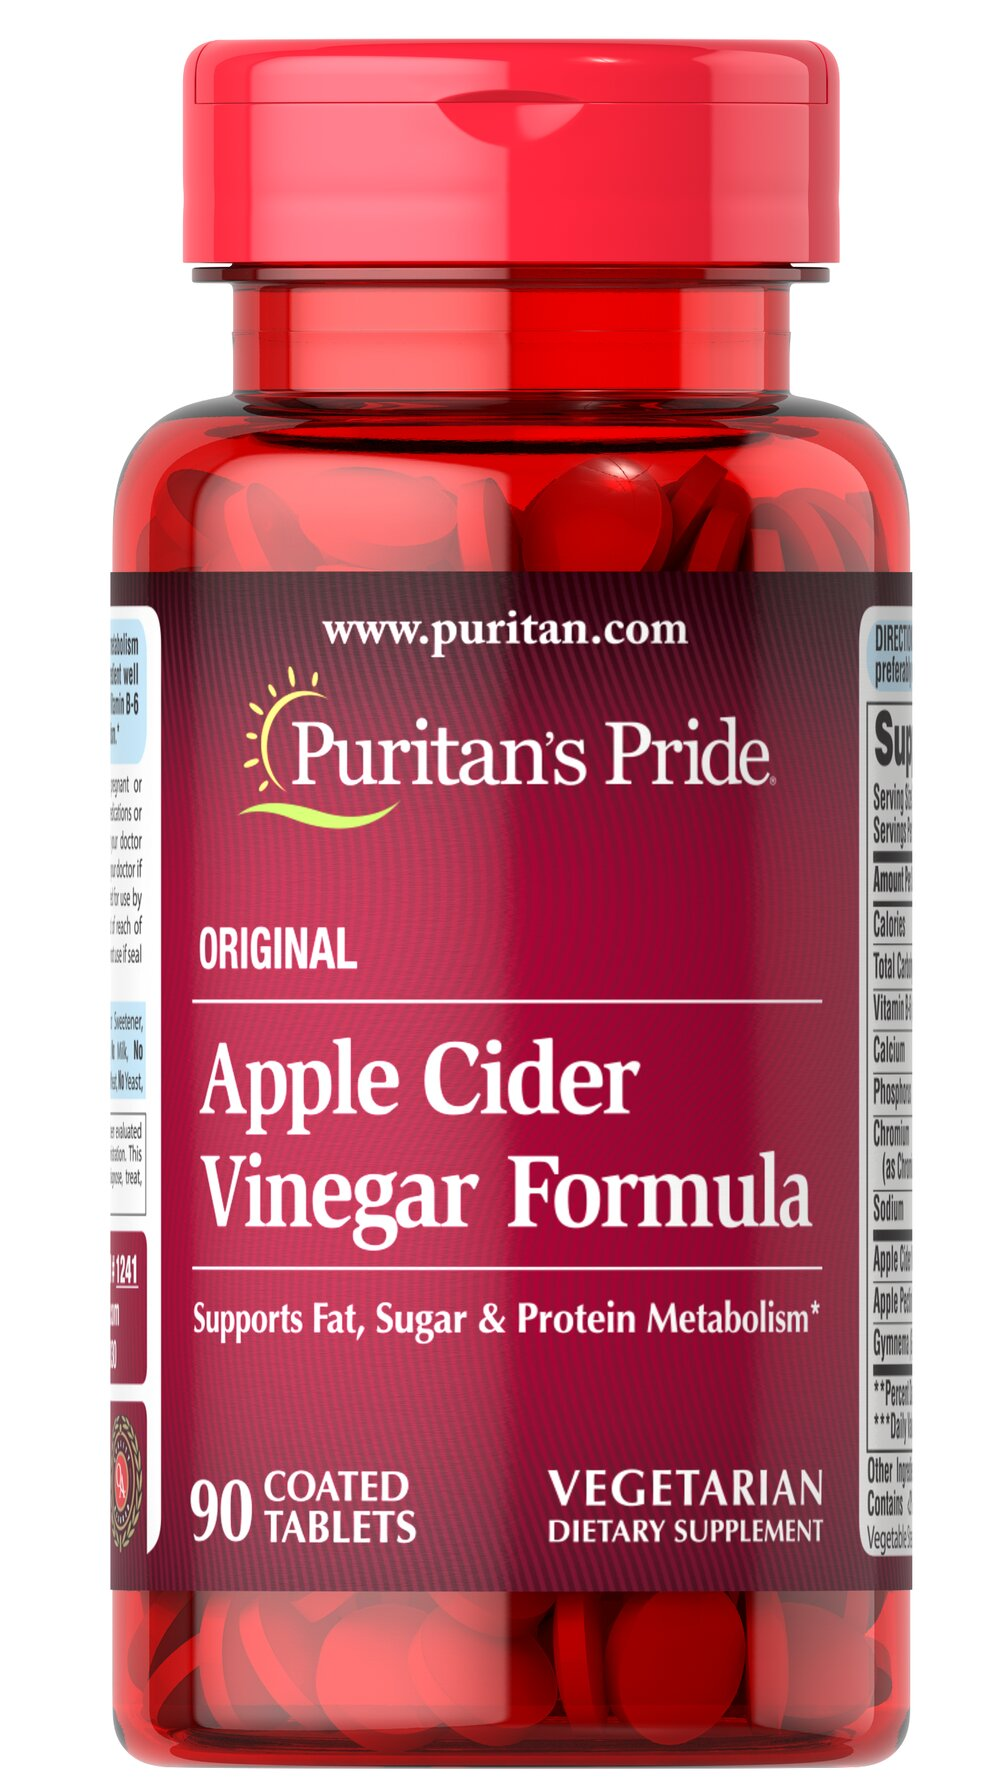 Apple Cider Vinegar Formula <p>Chances are, your mother and grandmother used Apple Cider Vinegar for a variety of purposes. As a supplement, Apple Cider Vinegar tablets are popular with fitness enthusiasts and those following healthy eating plans.</p> 90 Tablets  $10.99